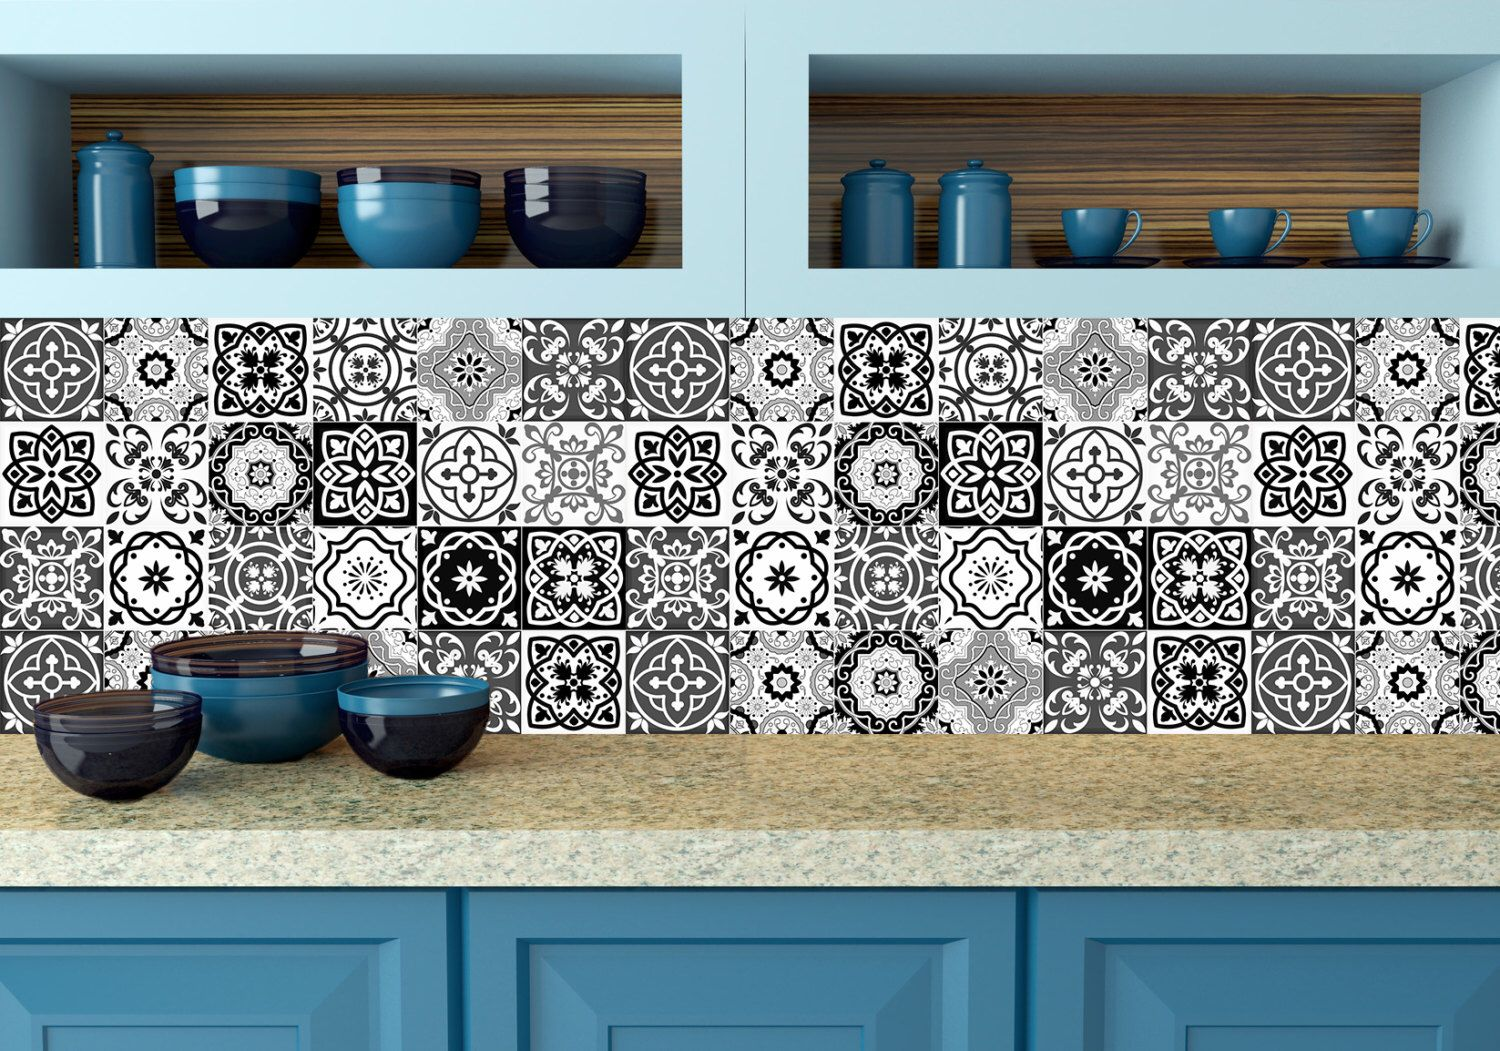 Black And White Design 24 Tile Stickers Mexican Talavera Style Splashback Mixed For Walls Kitchen